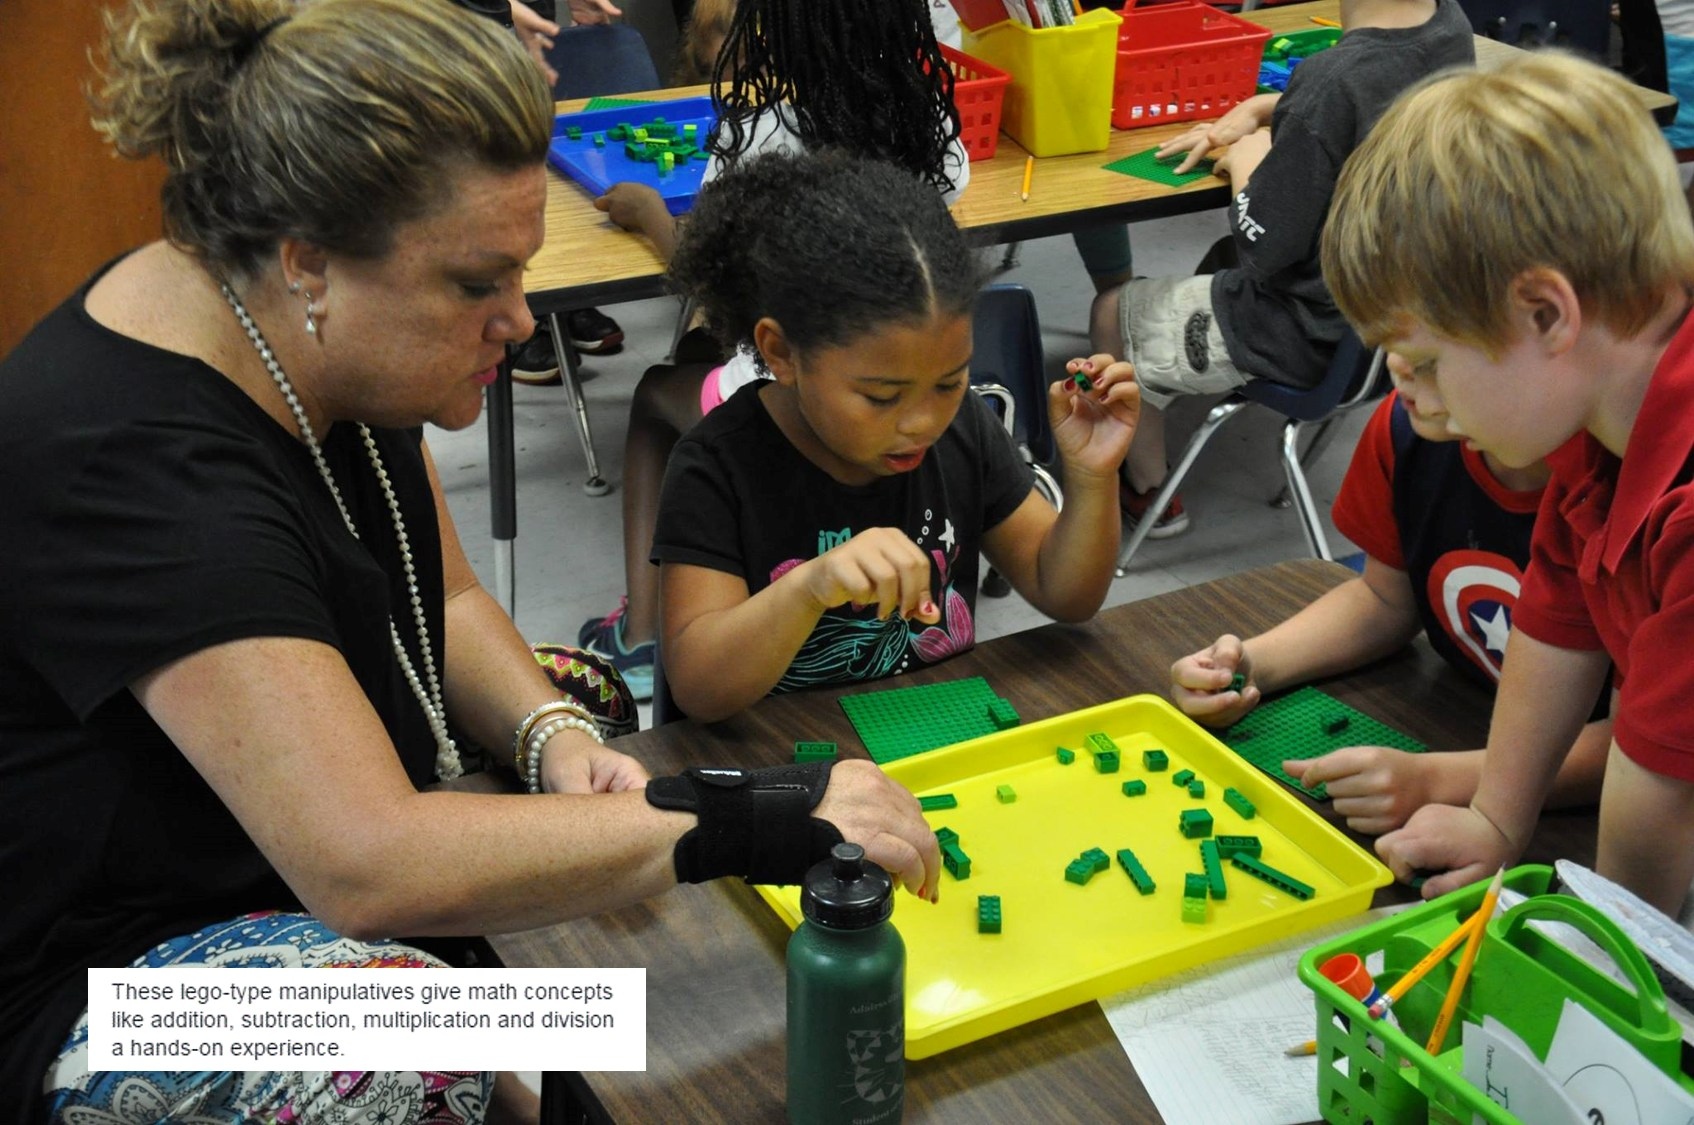 AES new math manipulatives